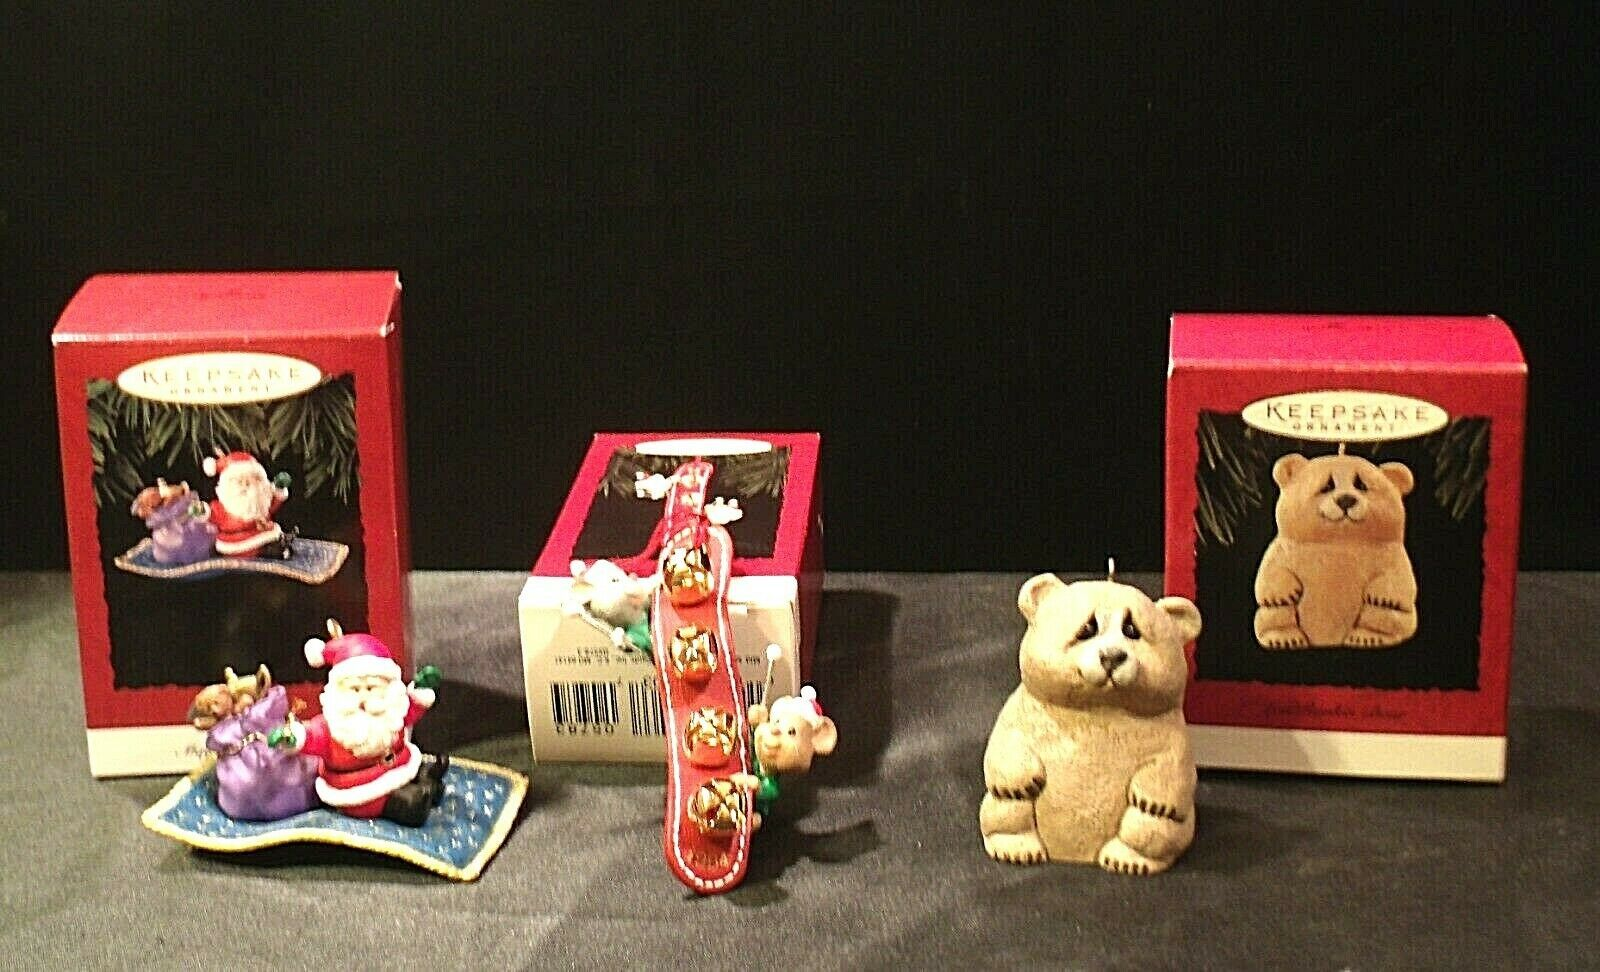 Hallmark Handcrafted Ornaments AA-191771D Collectible   ( 3 pieces )